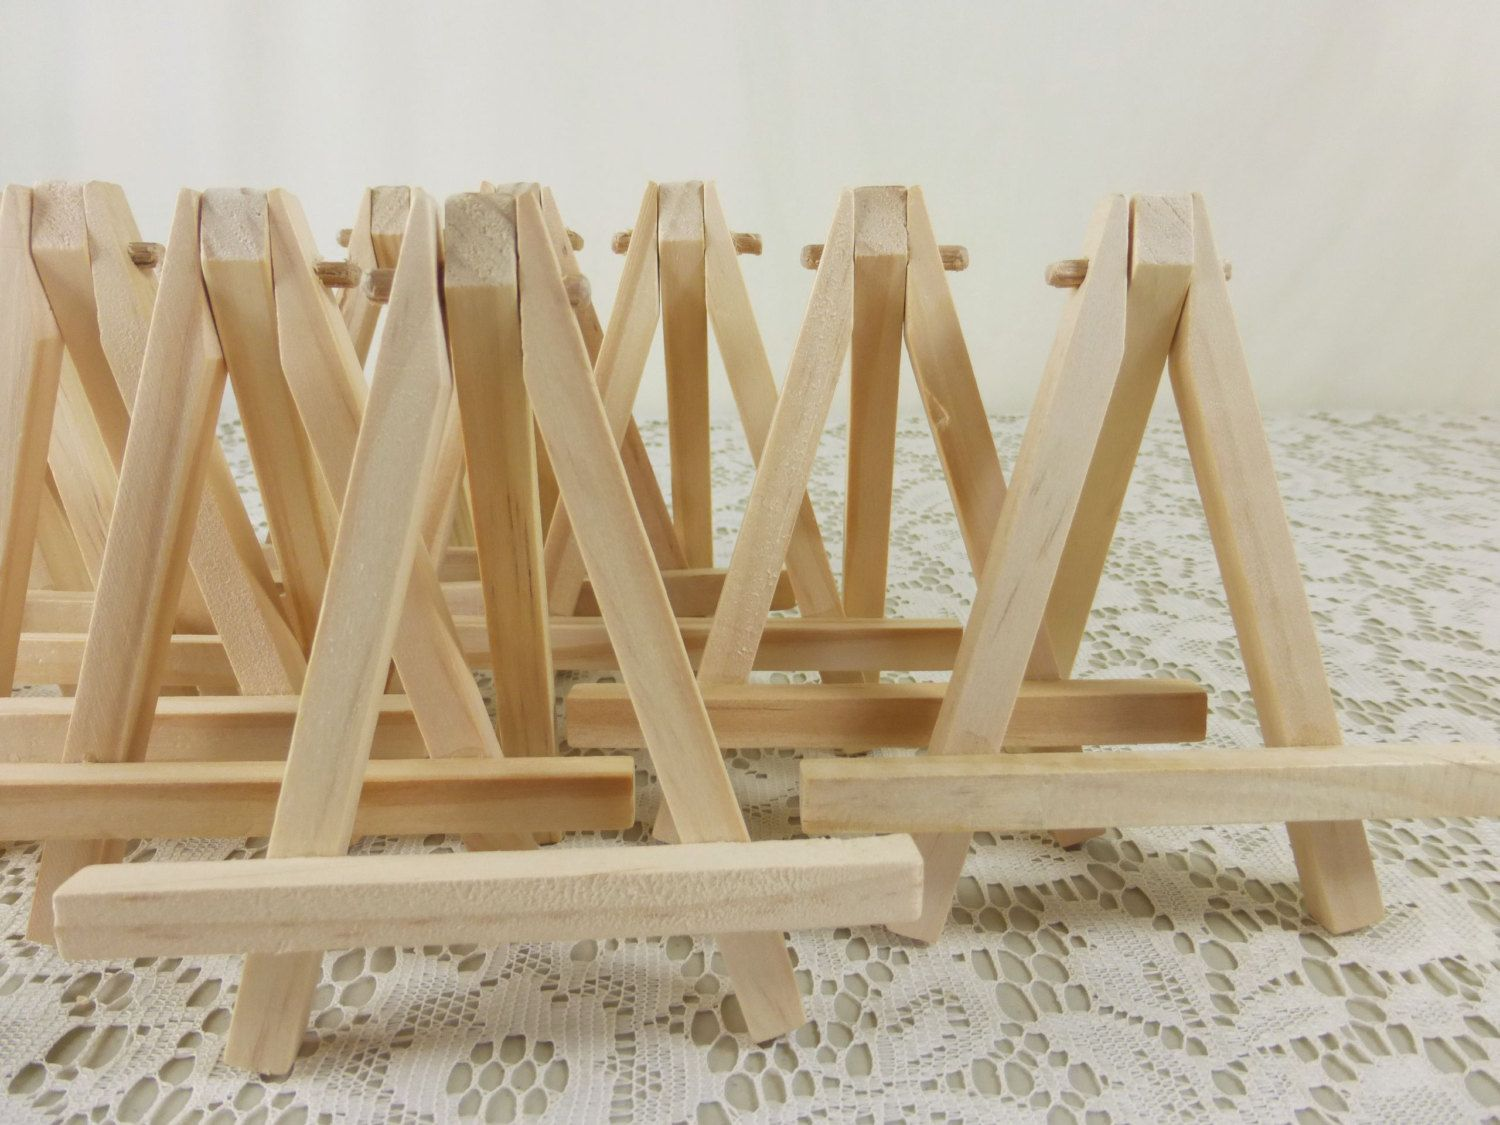 Attirant 5 Small Wood Easels, Natural Wood Tabletop Miniature Art Easels. Great To  Display Table Signs And Place Card Holders By #NaturesWalkStudio On Etsy